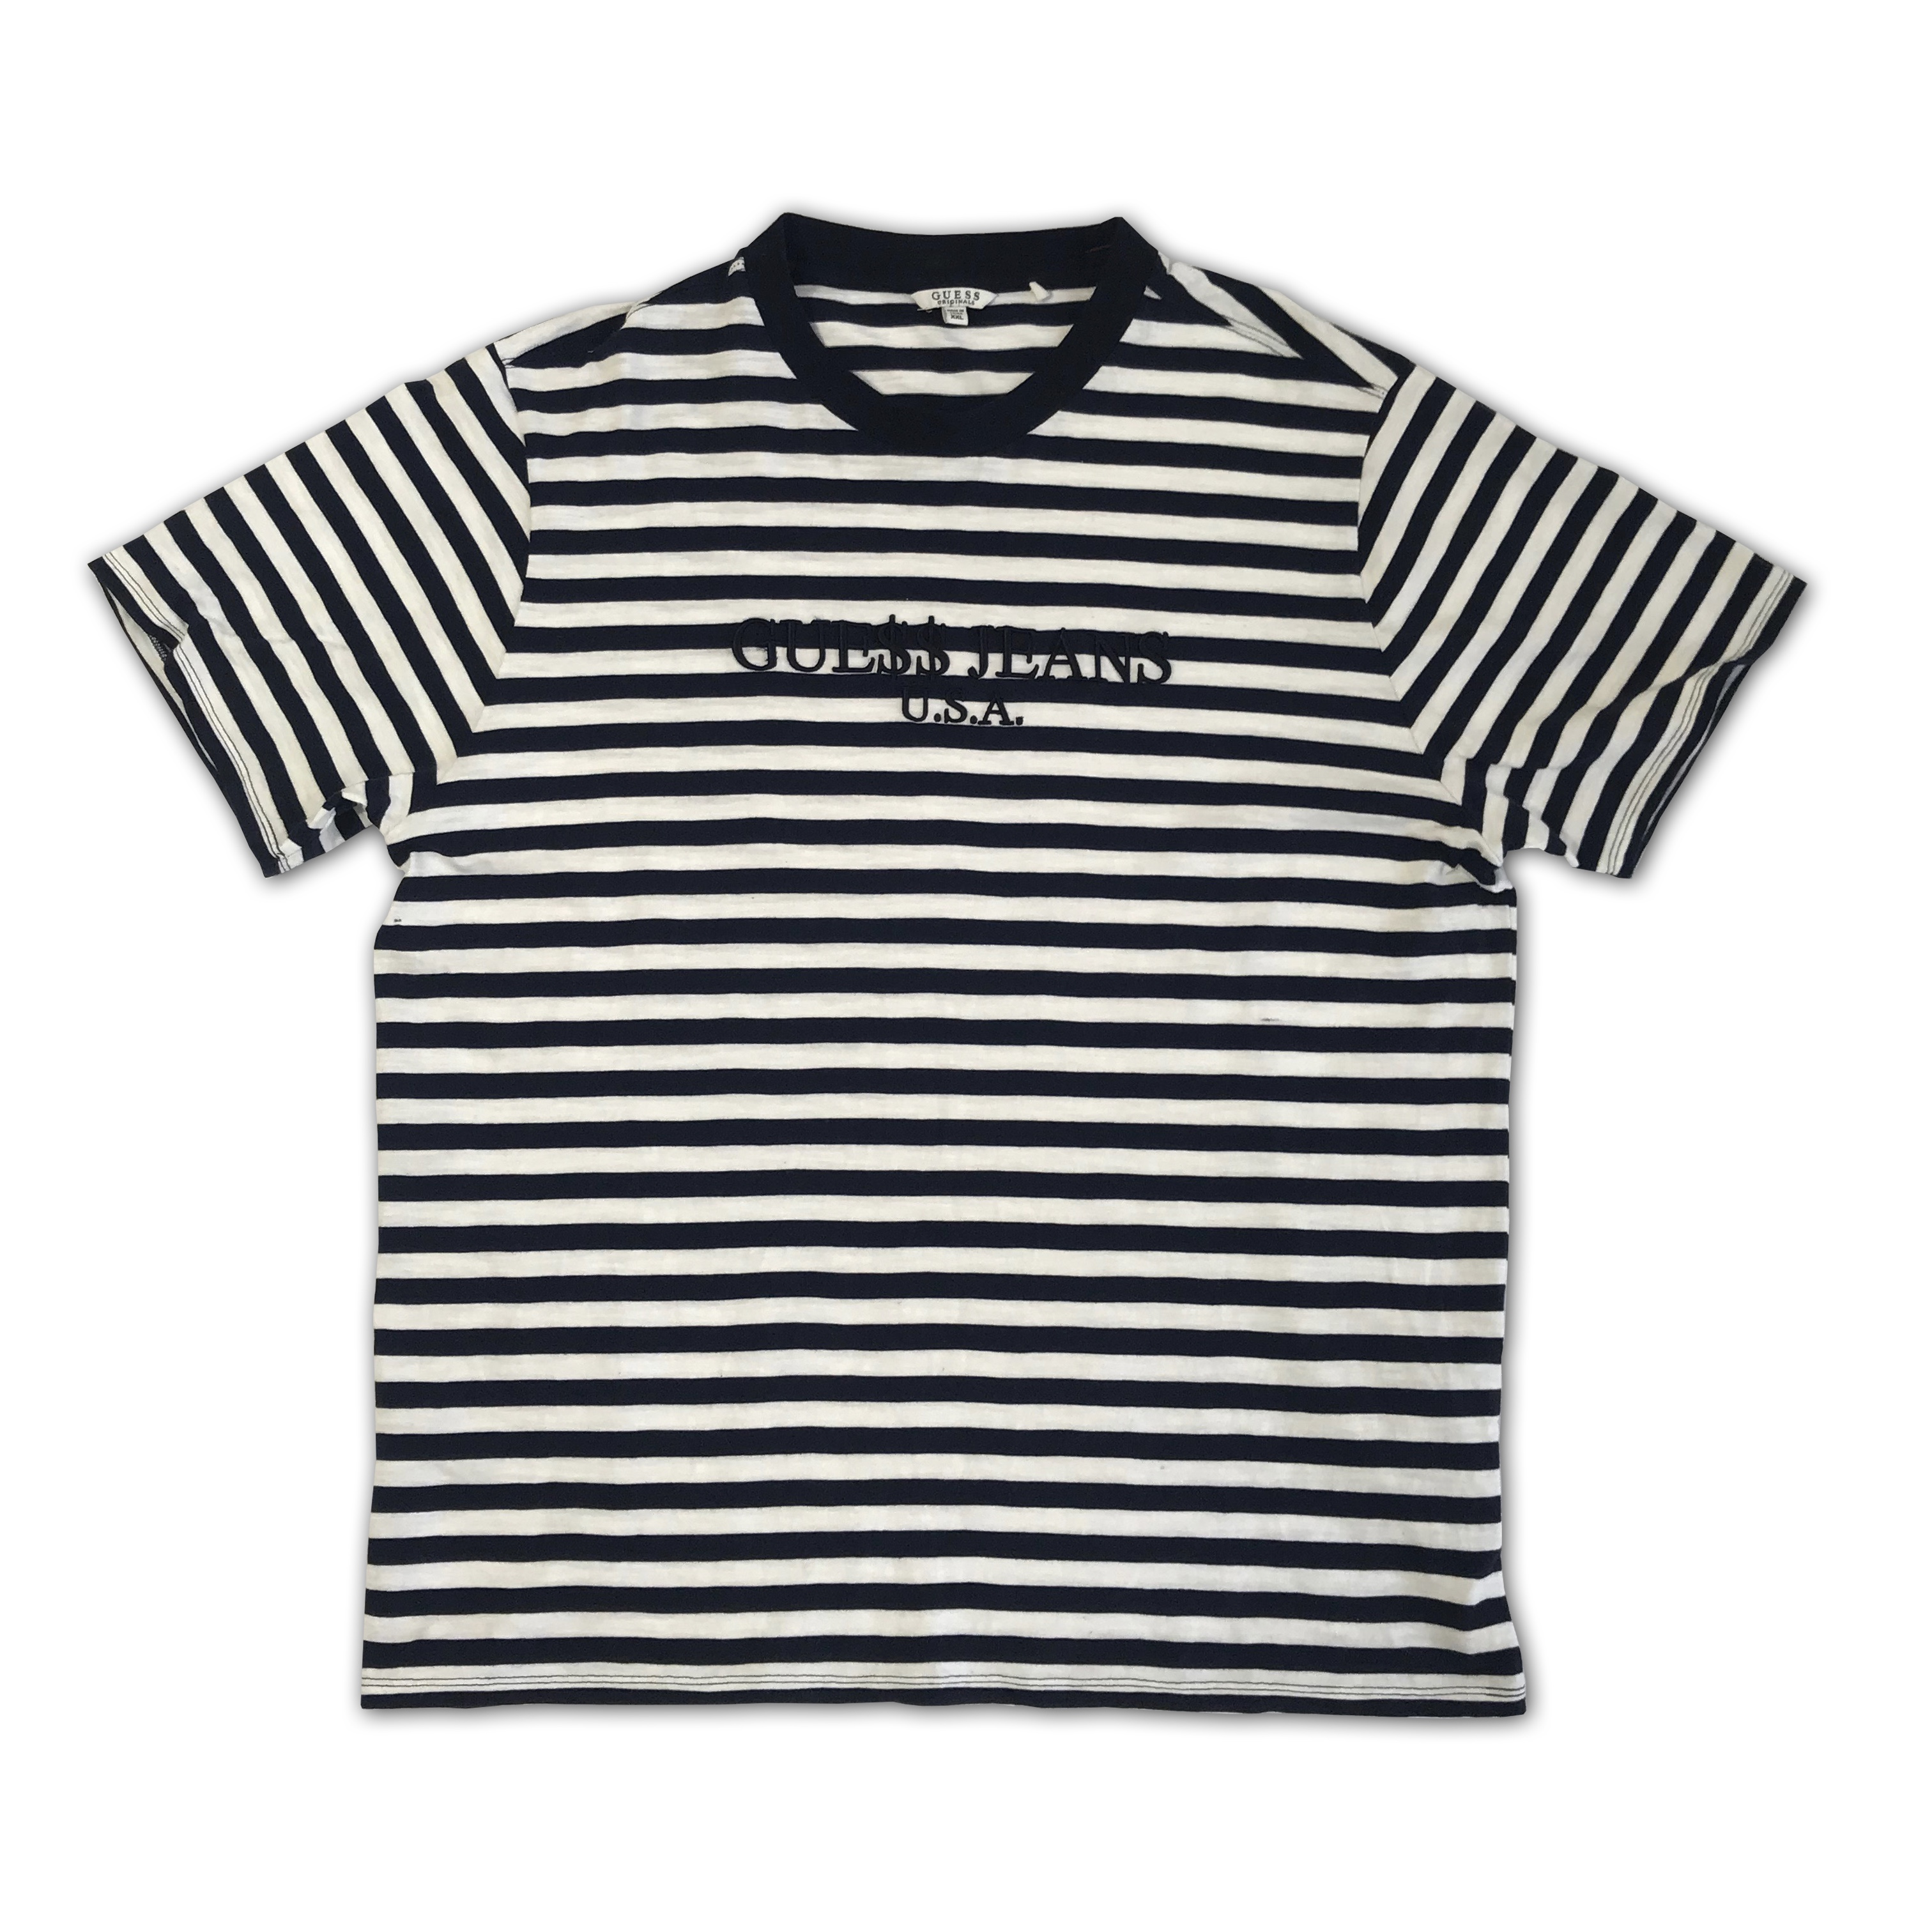 Guess X Asap Blue And White Stripe T Shirt